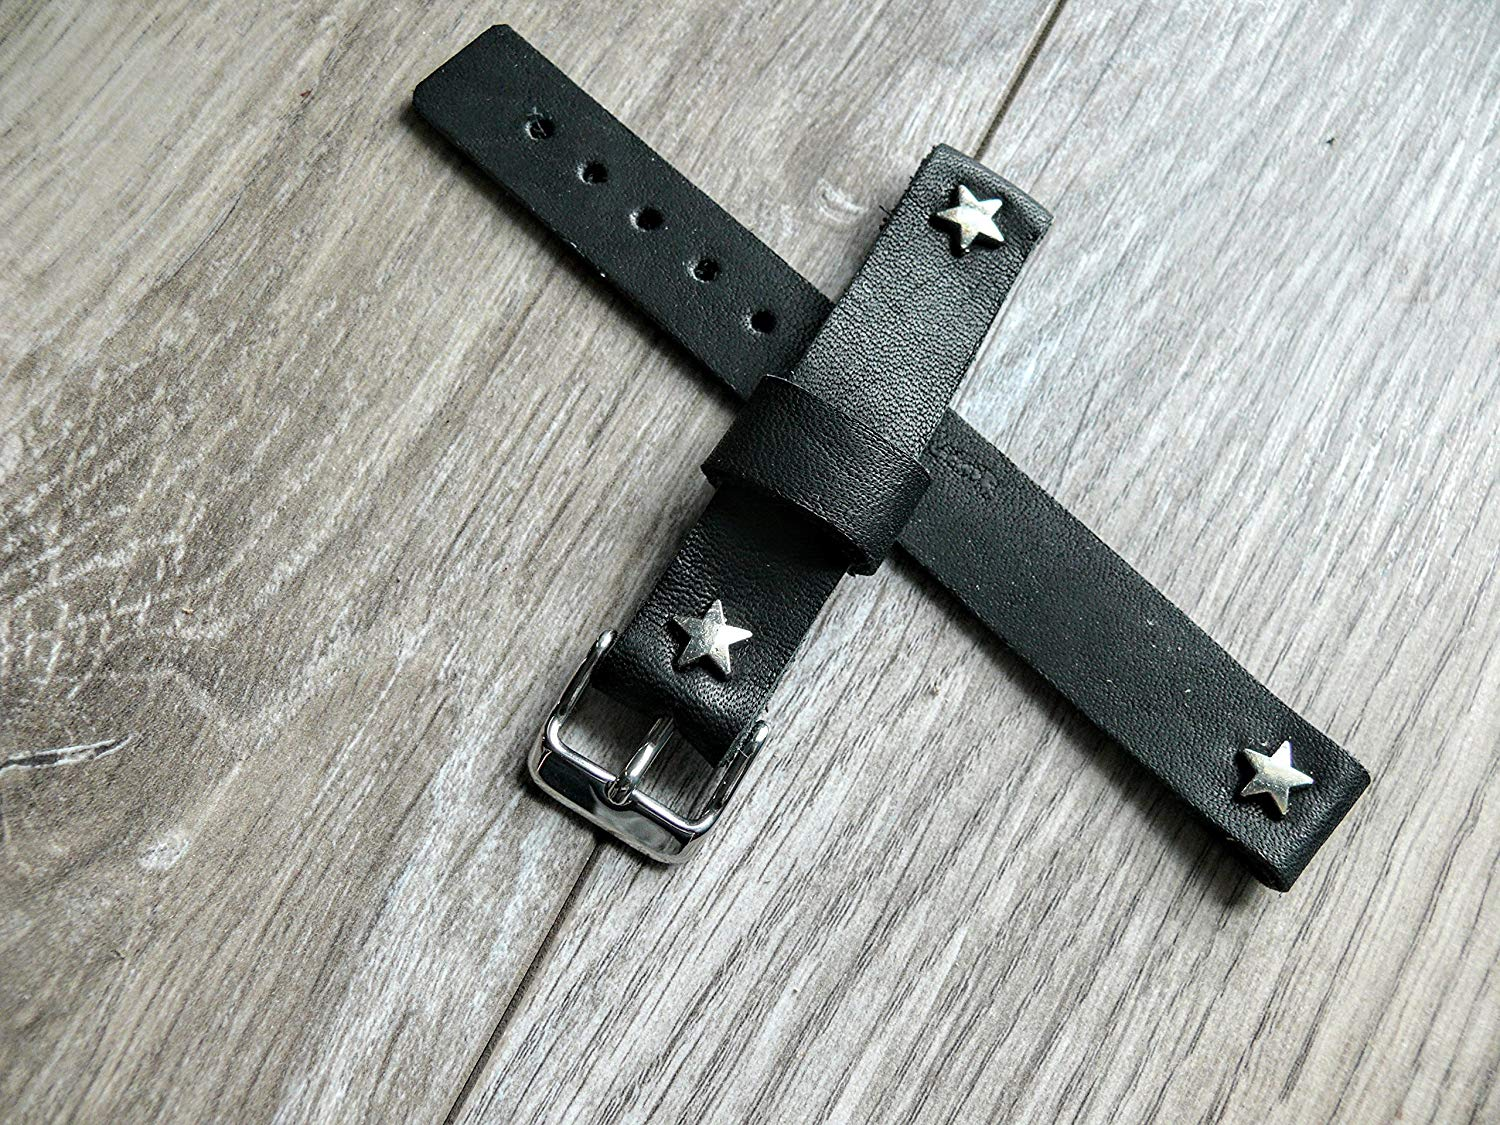 Handmade black leather band, star rivets leather band, watch band, watch strap, black band 16mm band, handmade Rugged Leather Watch Band, Handmade genuine leather watch strap, handmade band